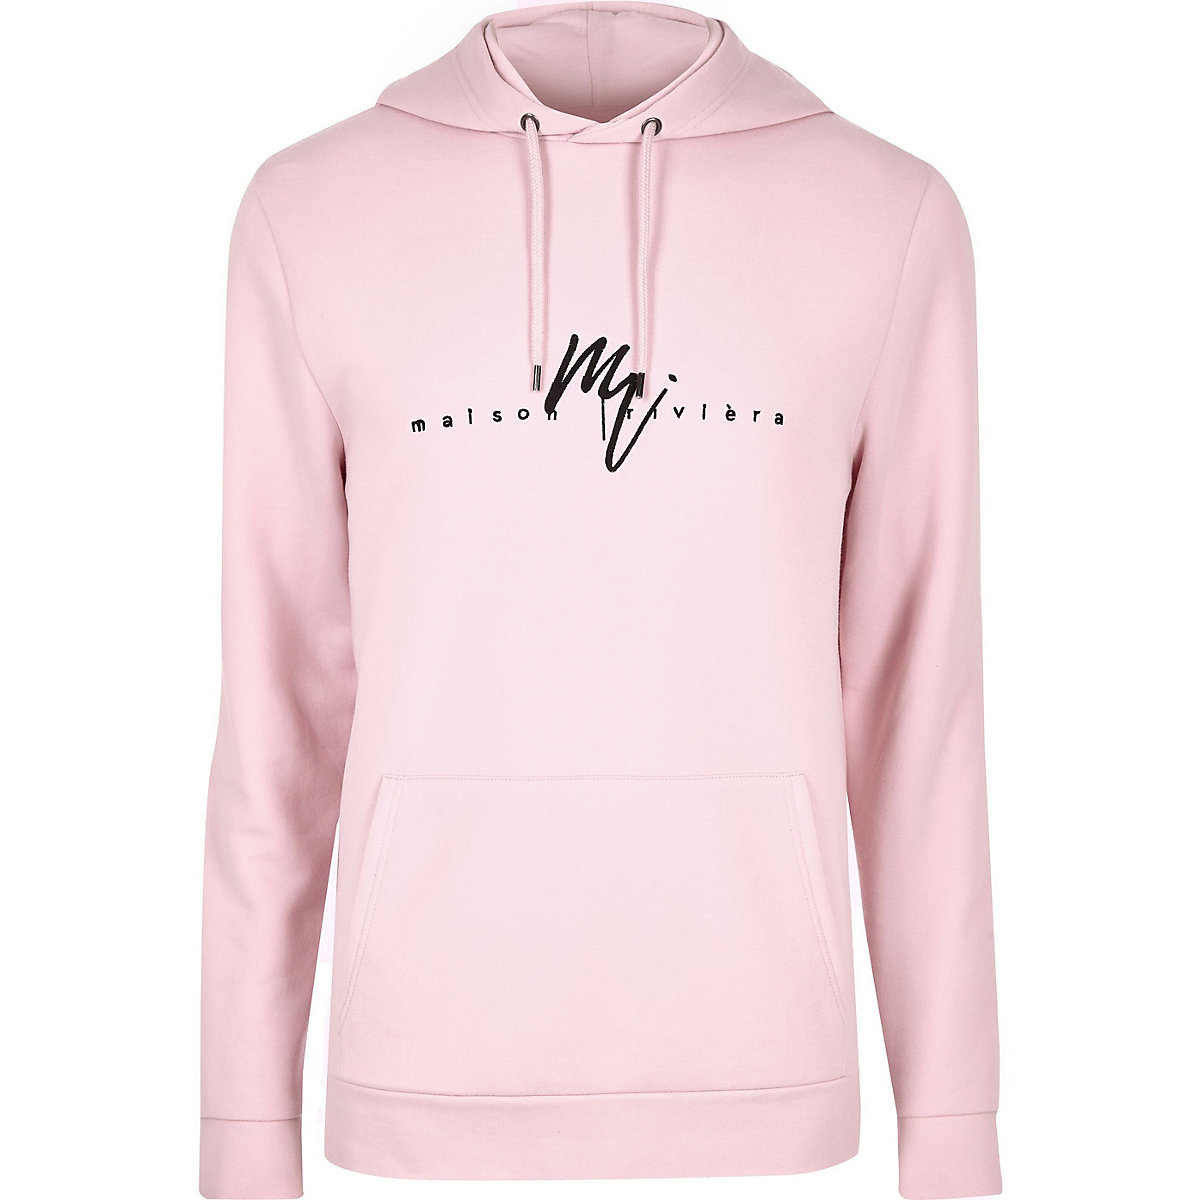 Big and Tall pink embroidered hoodie